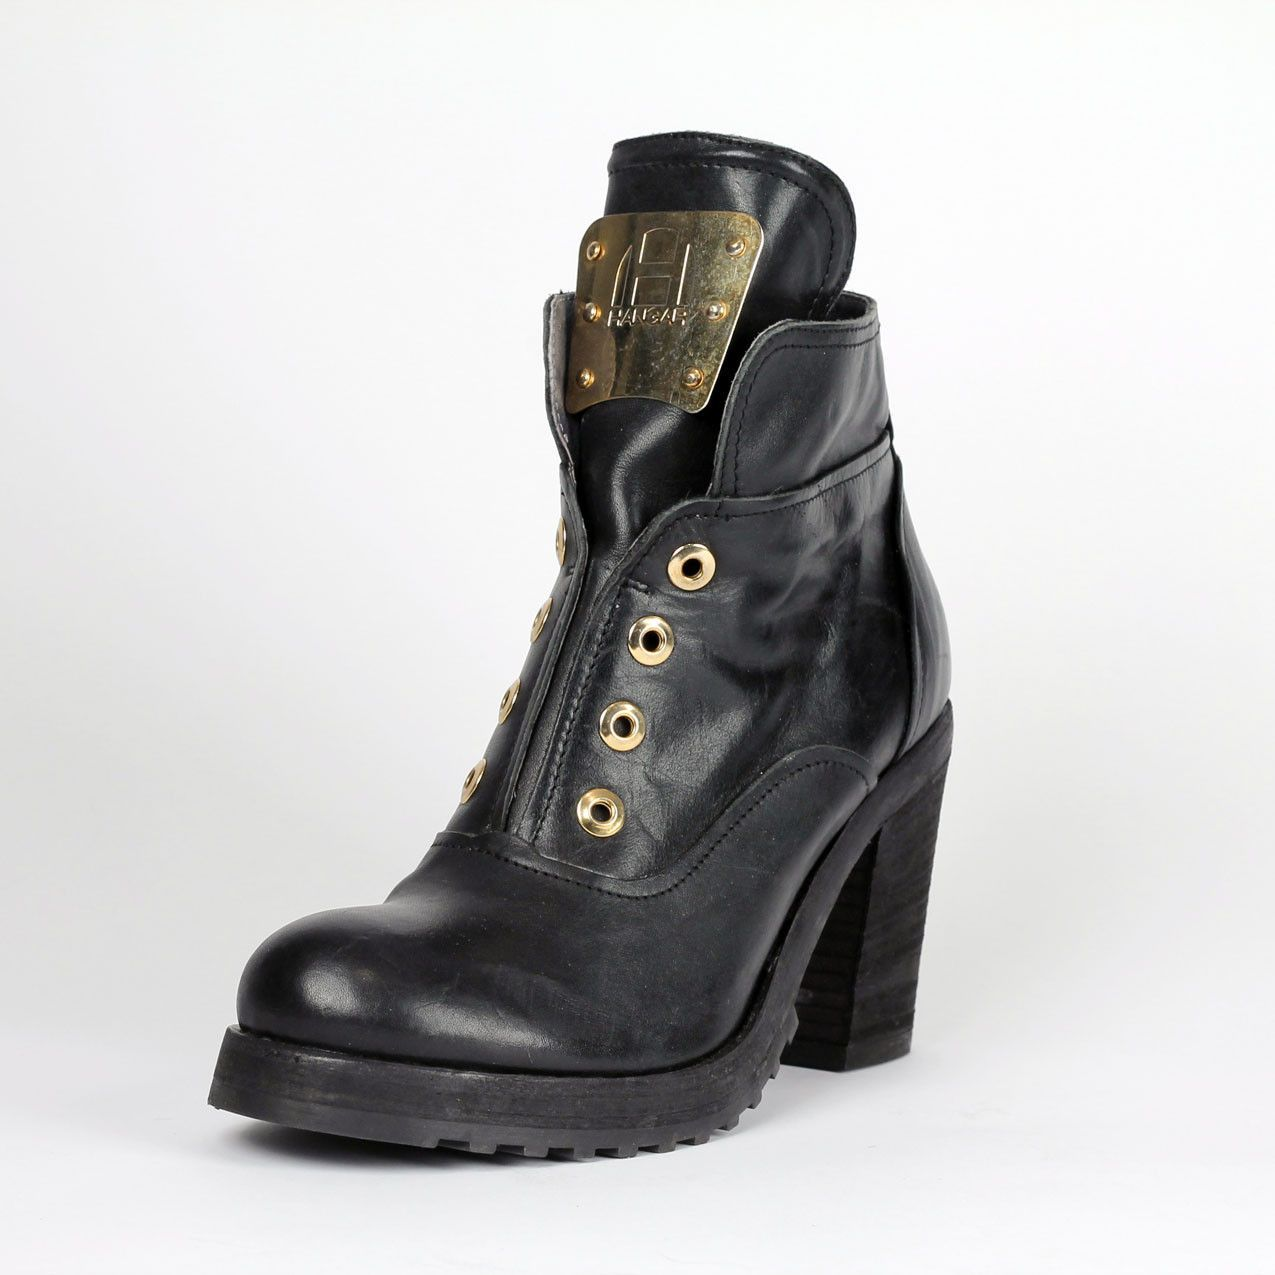 Black Lace-less Bootie with Metal Bar